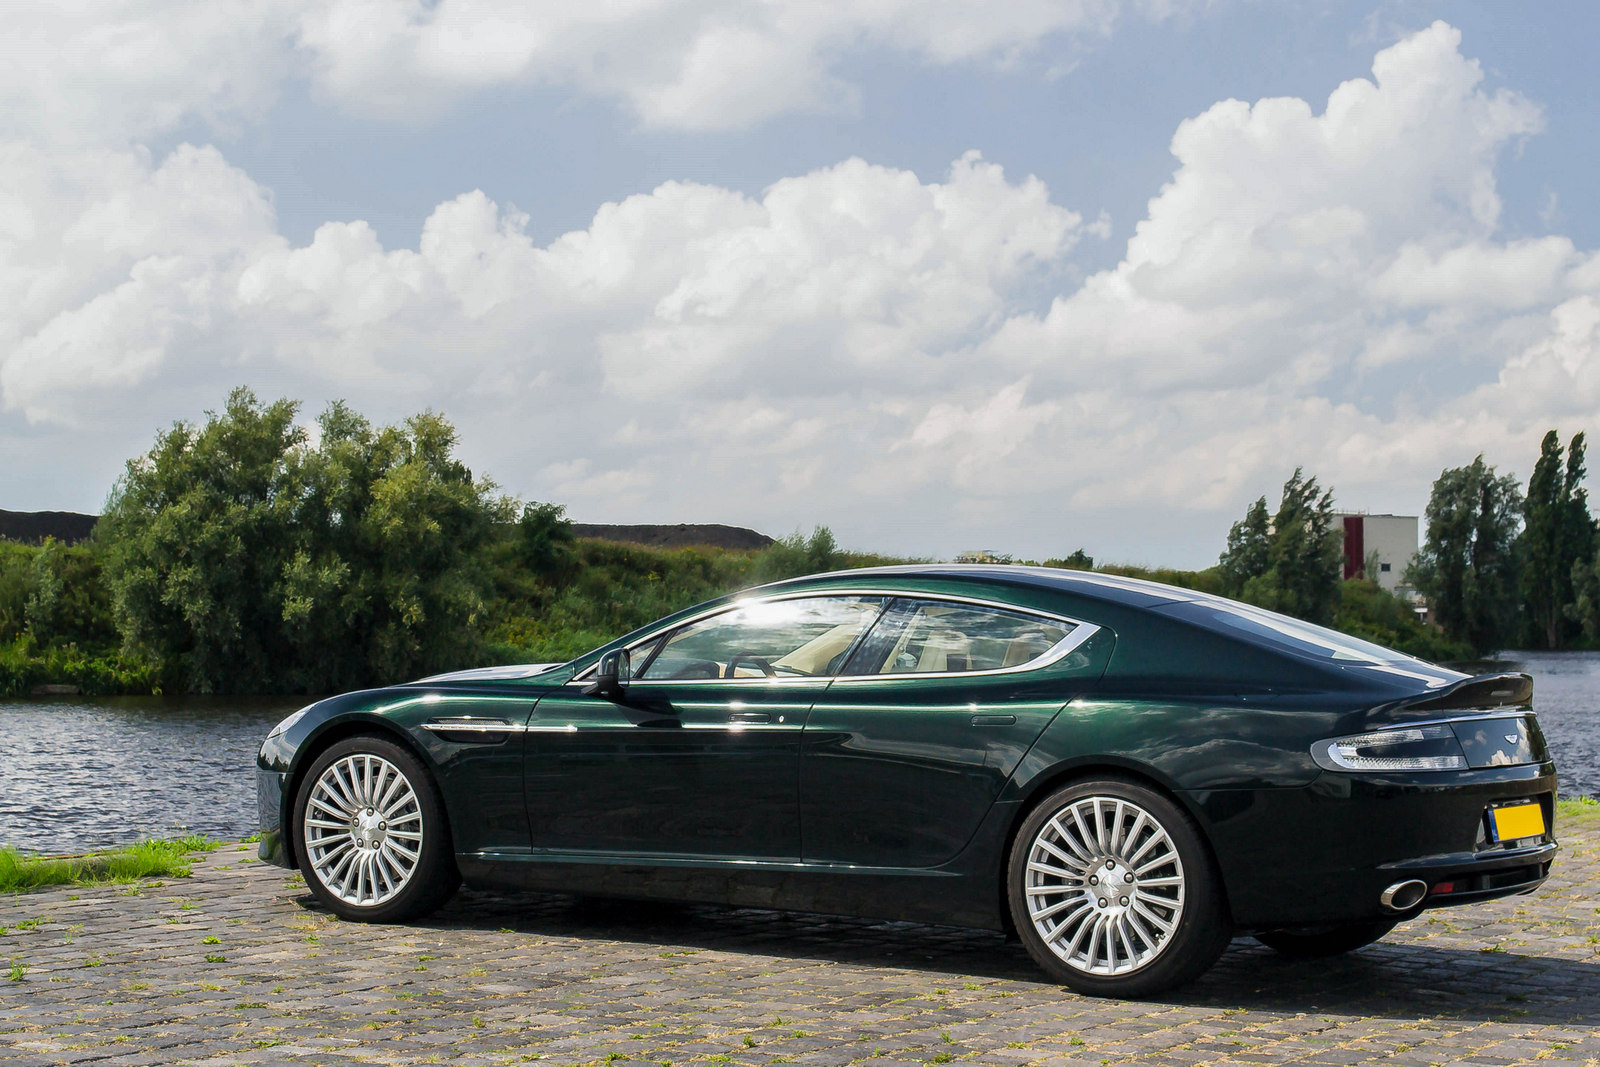 photoshoot aston martin rapide s in a beautiful green colour. Black Bedroom Furniture Sets. Home Design Ideas